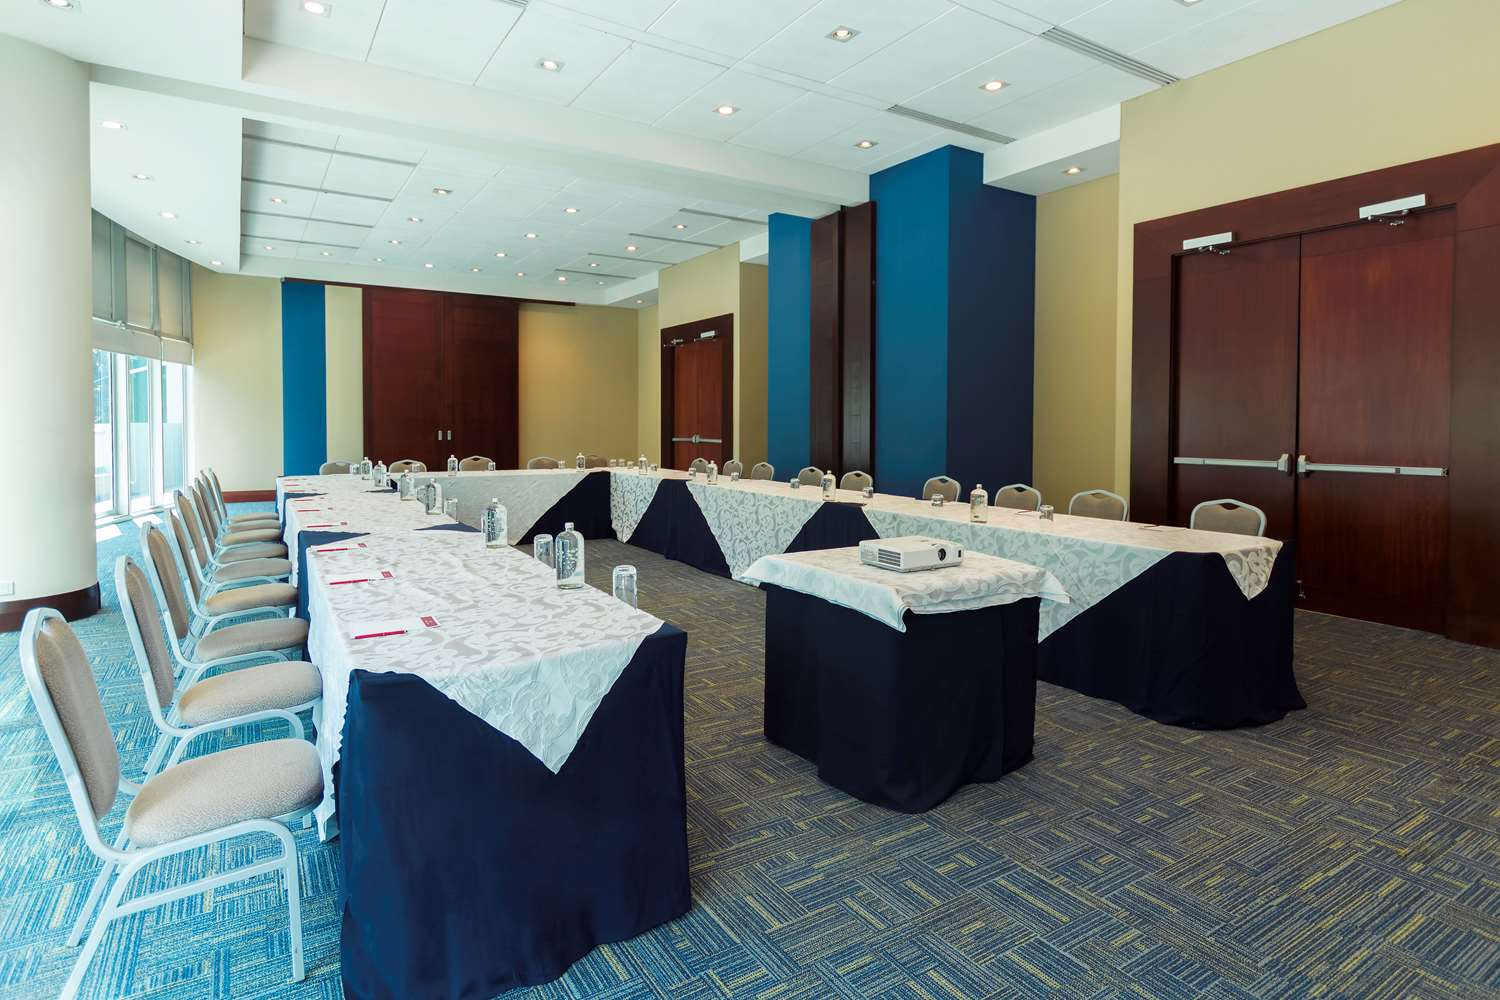 Meeting room - U-shaped